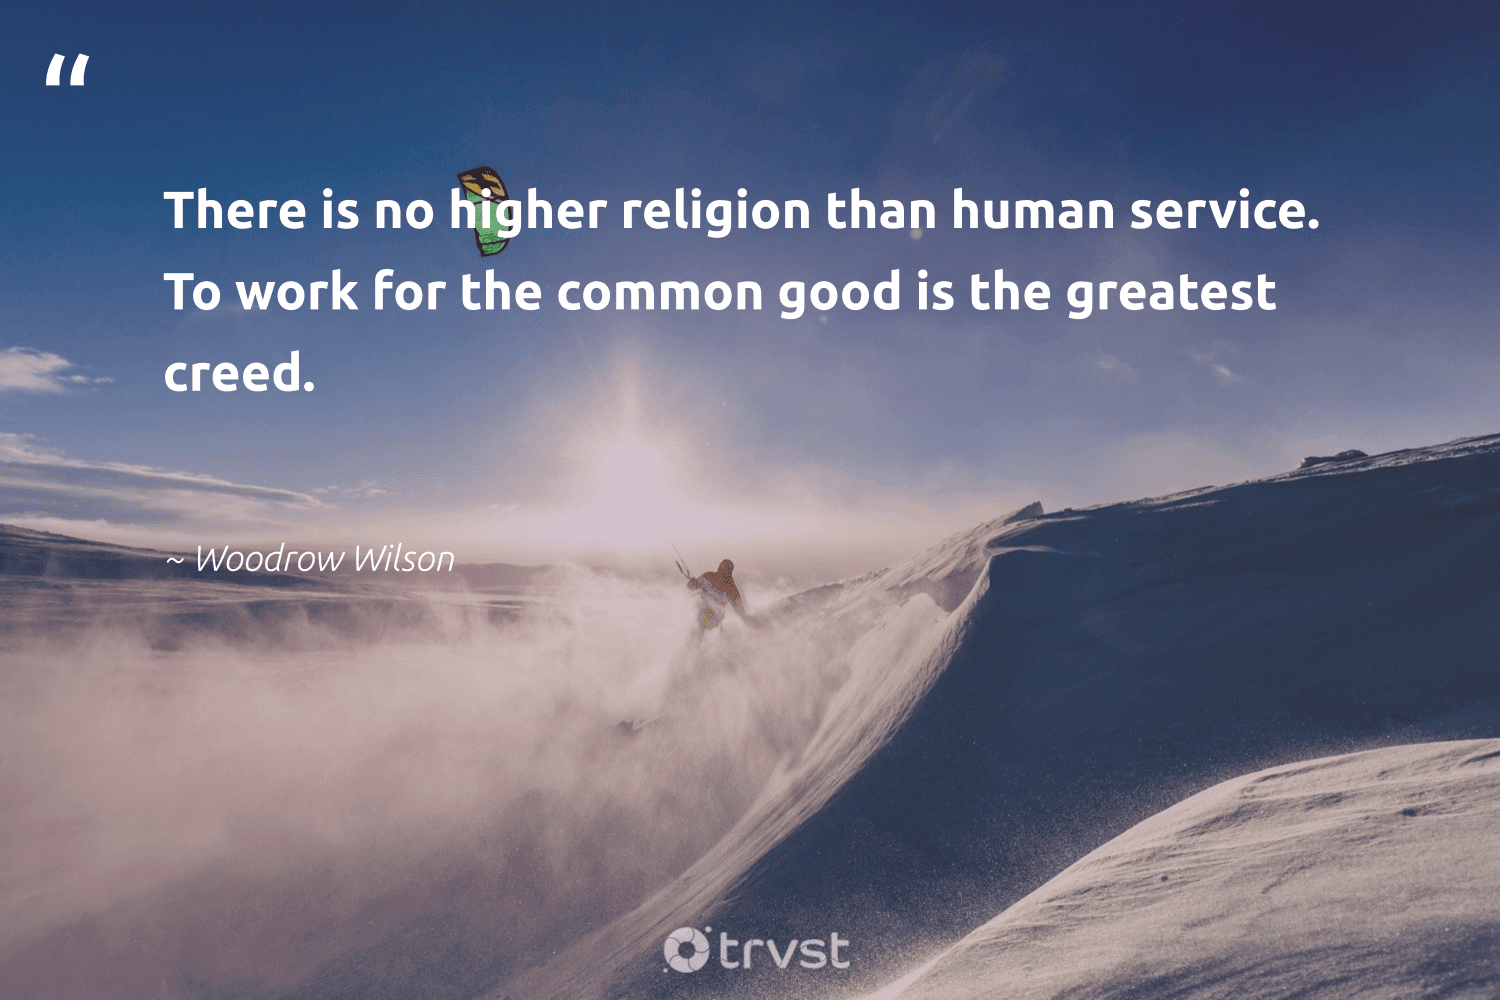 """""""There is no higher religion than human service. To work for the common good is the greatest creed.""""  - Woodrow Wilson #trvst #quotes #futureofwork #collectiveaction #begreat #thinkgreen #softskills #beinspired #nevergiveup #bethechange #socialimpact #dotherightthing"""